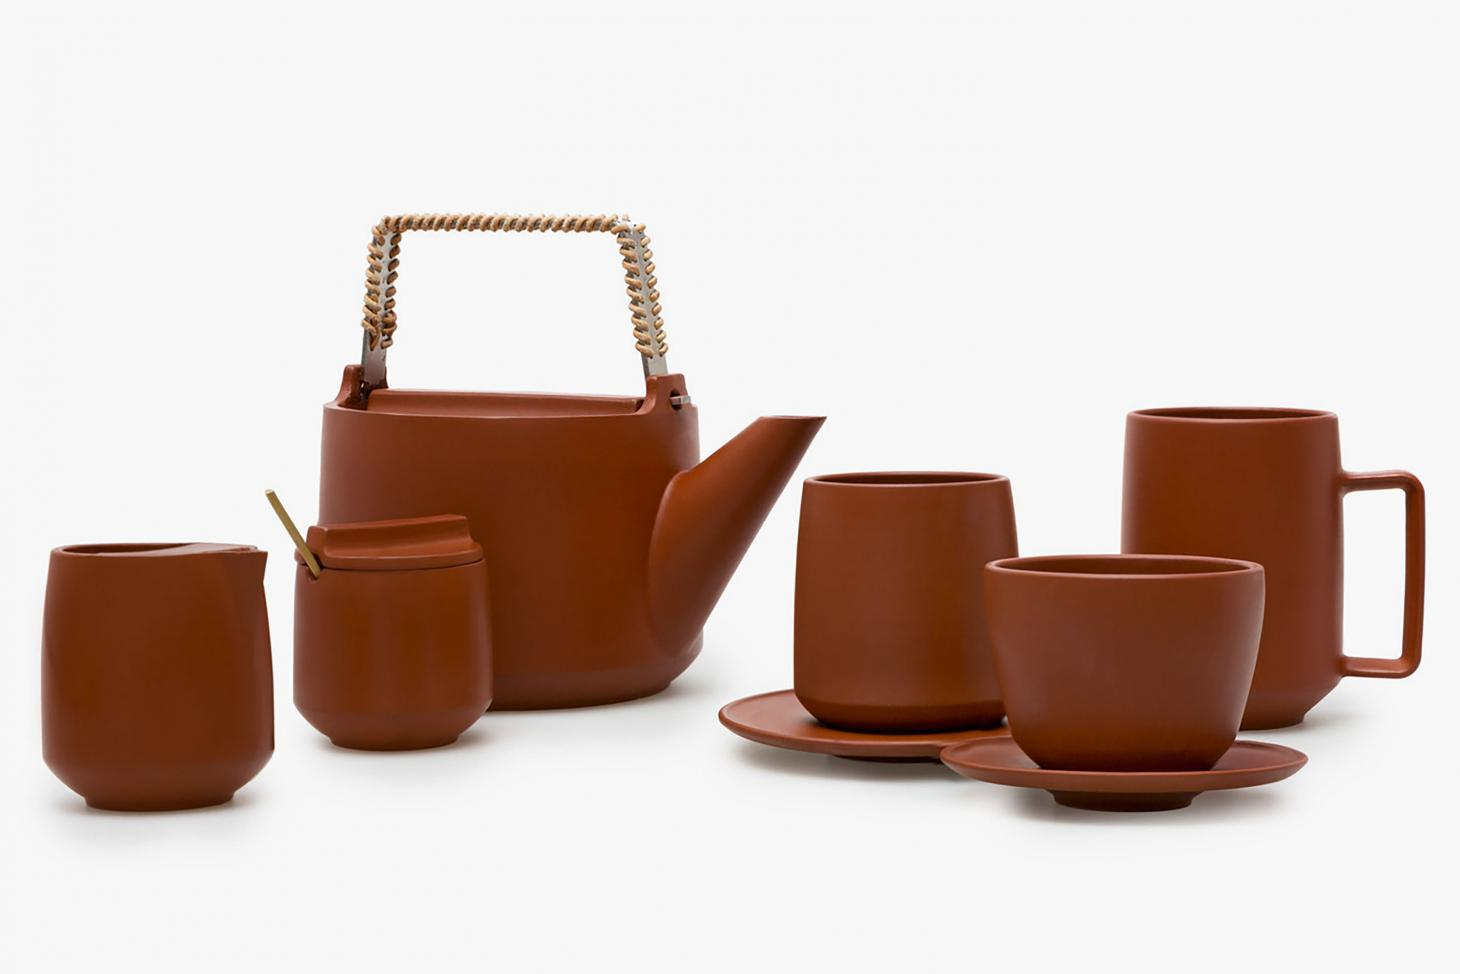 A teapot set by Jenner